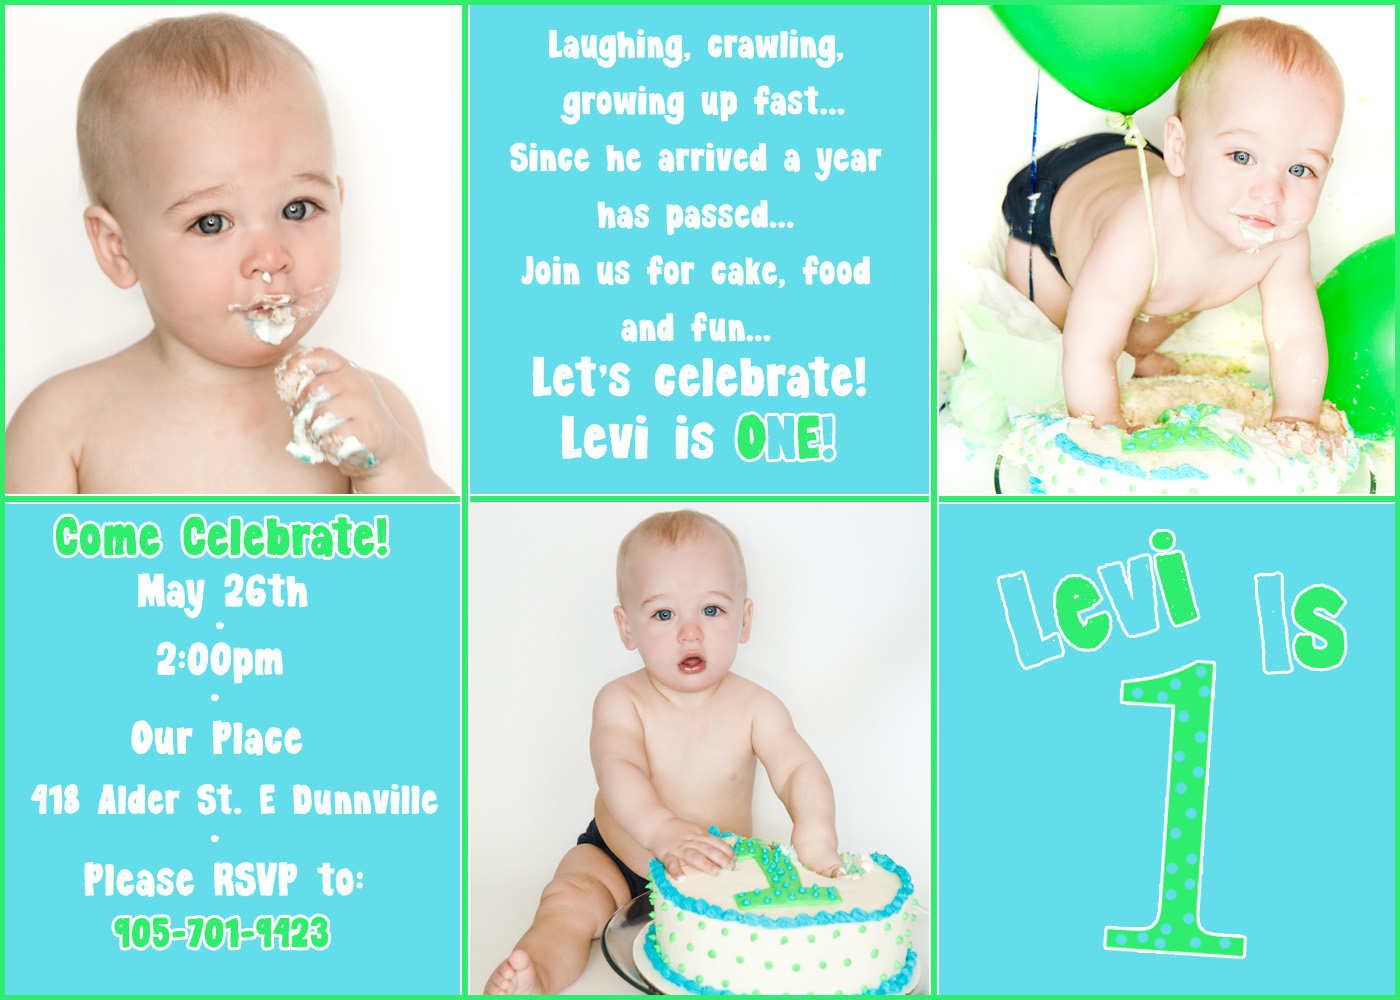 Magnificent 1st birthday card template photos entry level resume printable baby 1st birthday invitation hallmark free the browy blog some recent event designs bookmarktalkfo Gallery